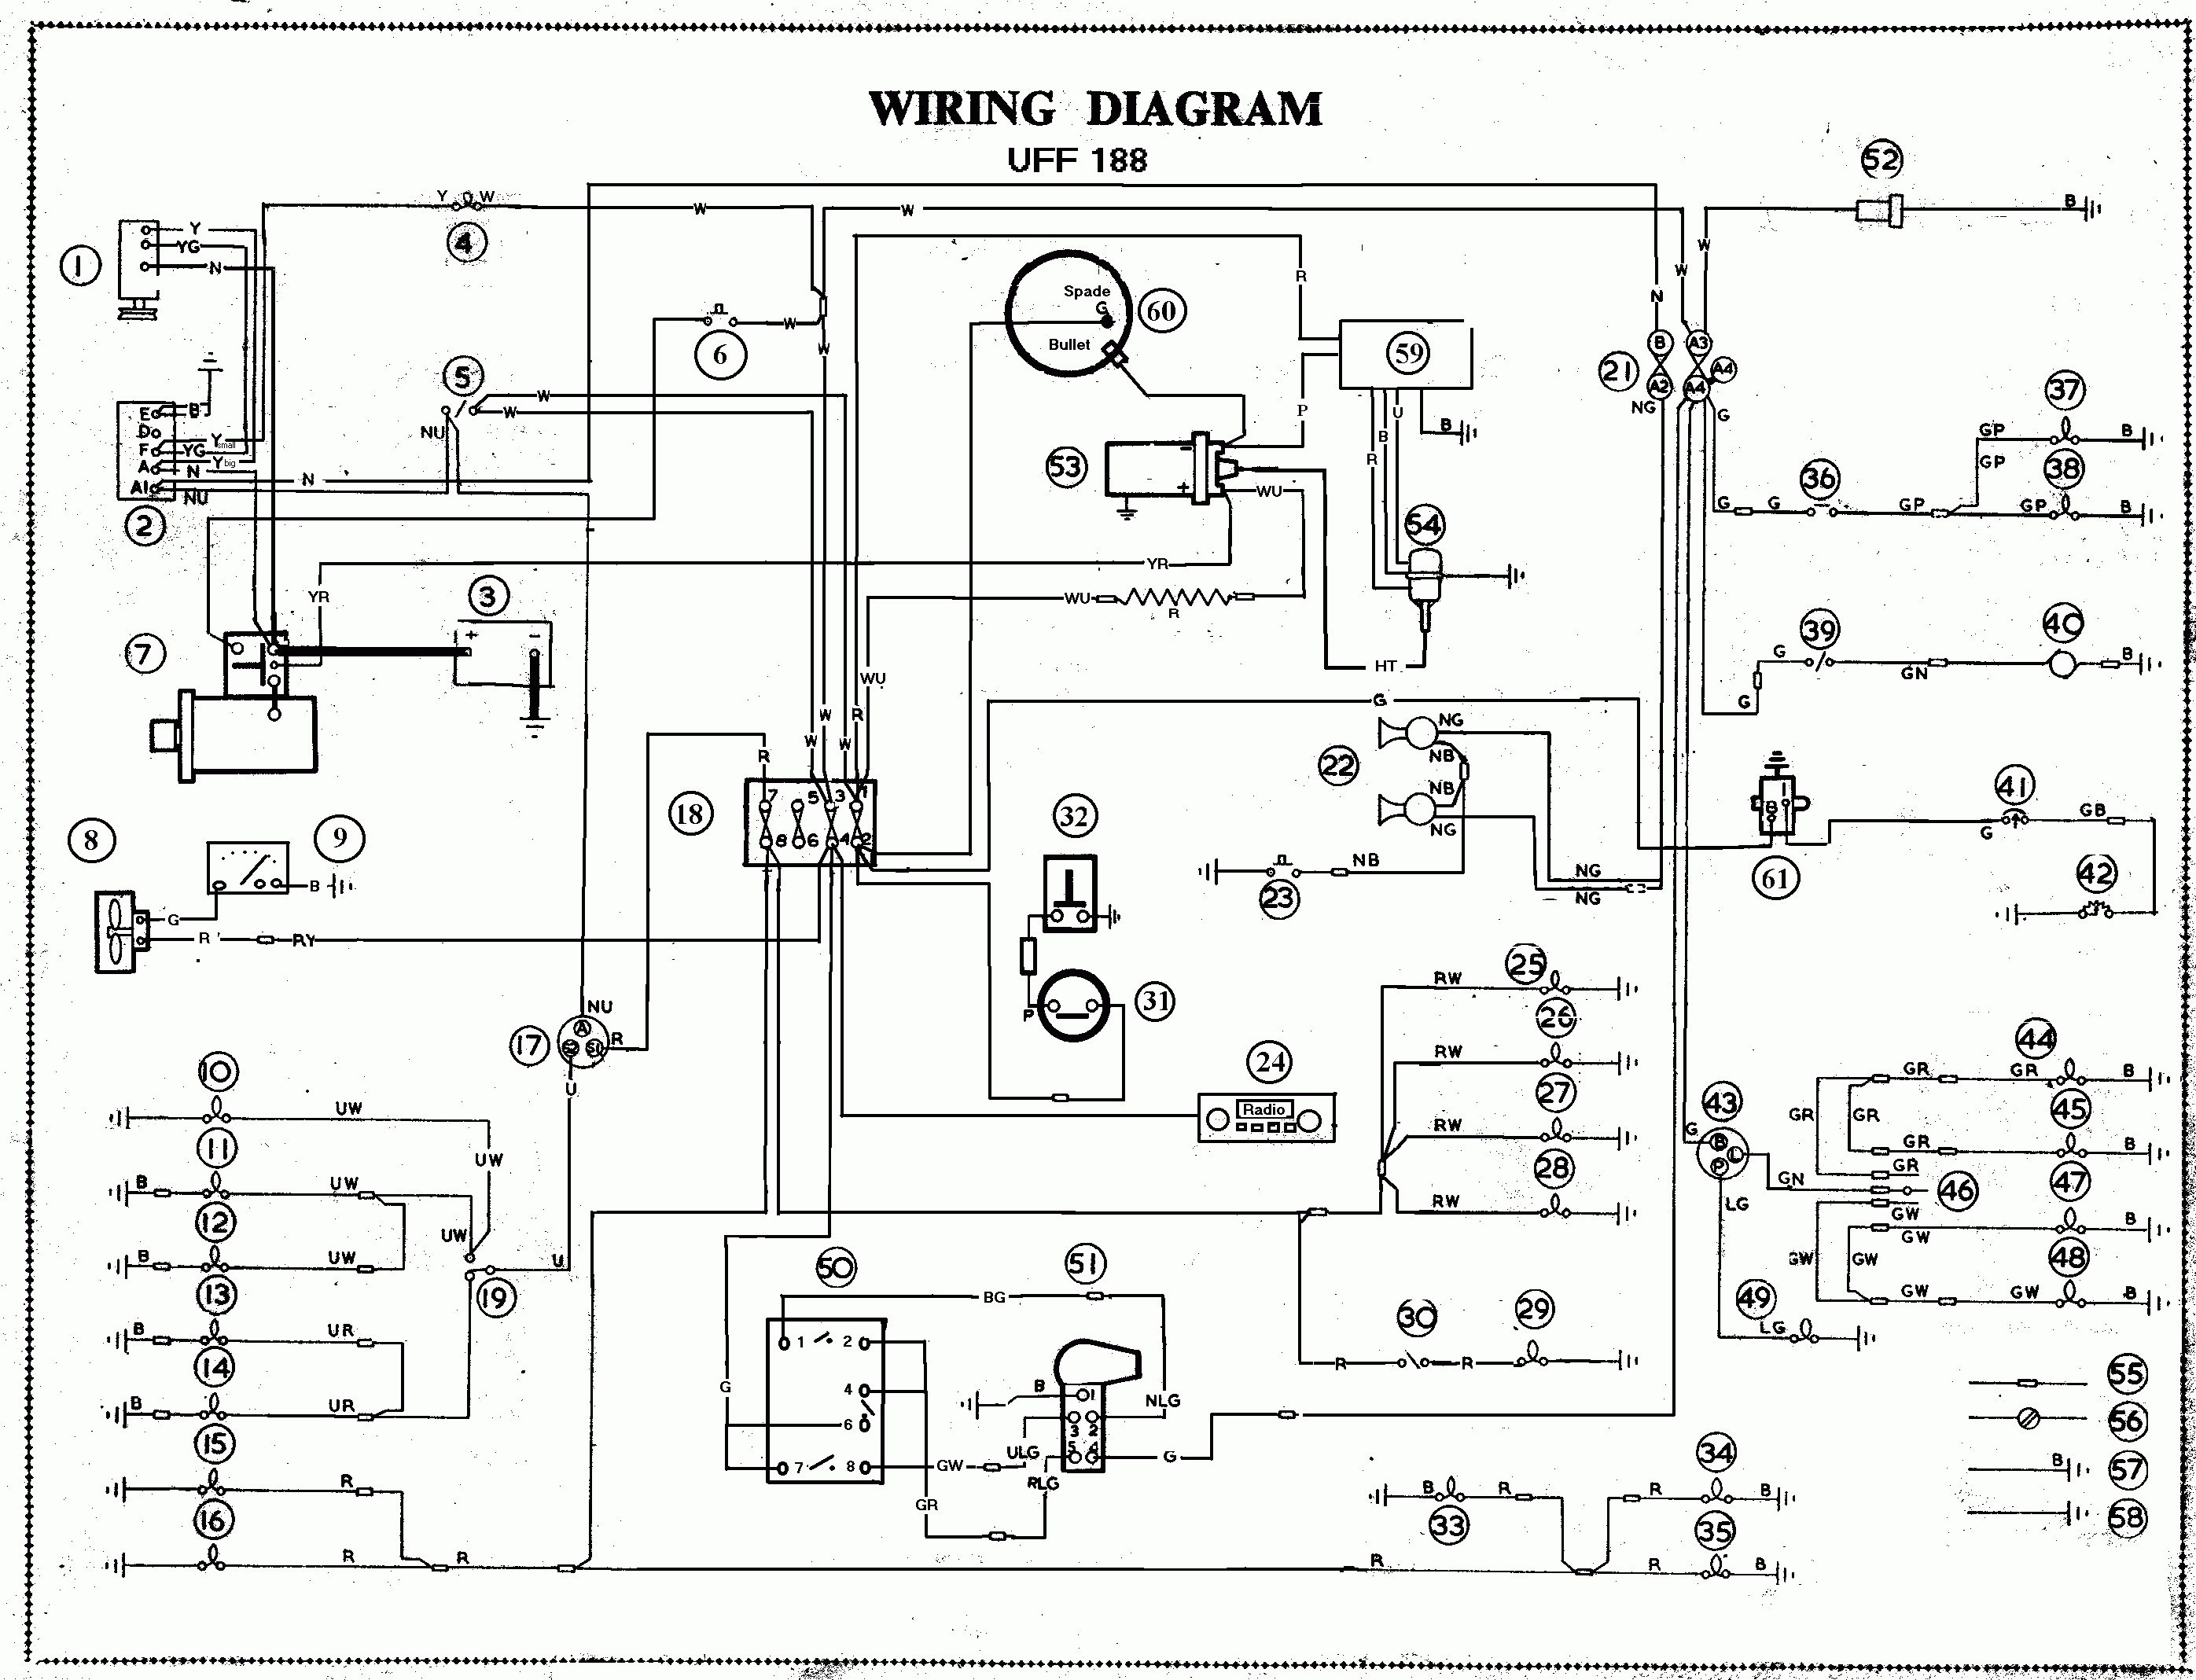 2001 Audi Wiring Diagram A2 Central Locking Electrical Diagrams Engine A4 New Relay